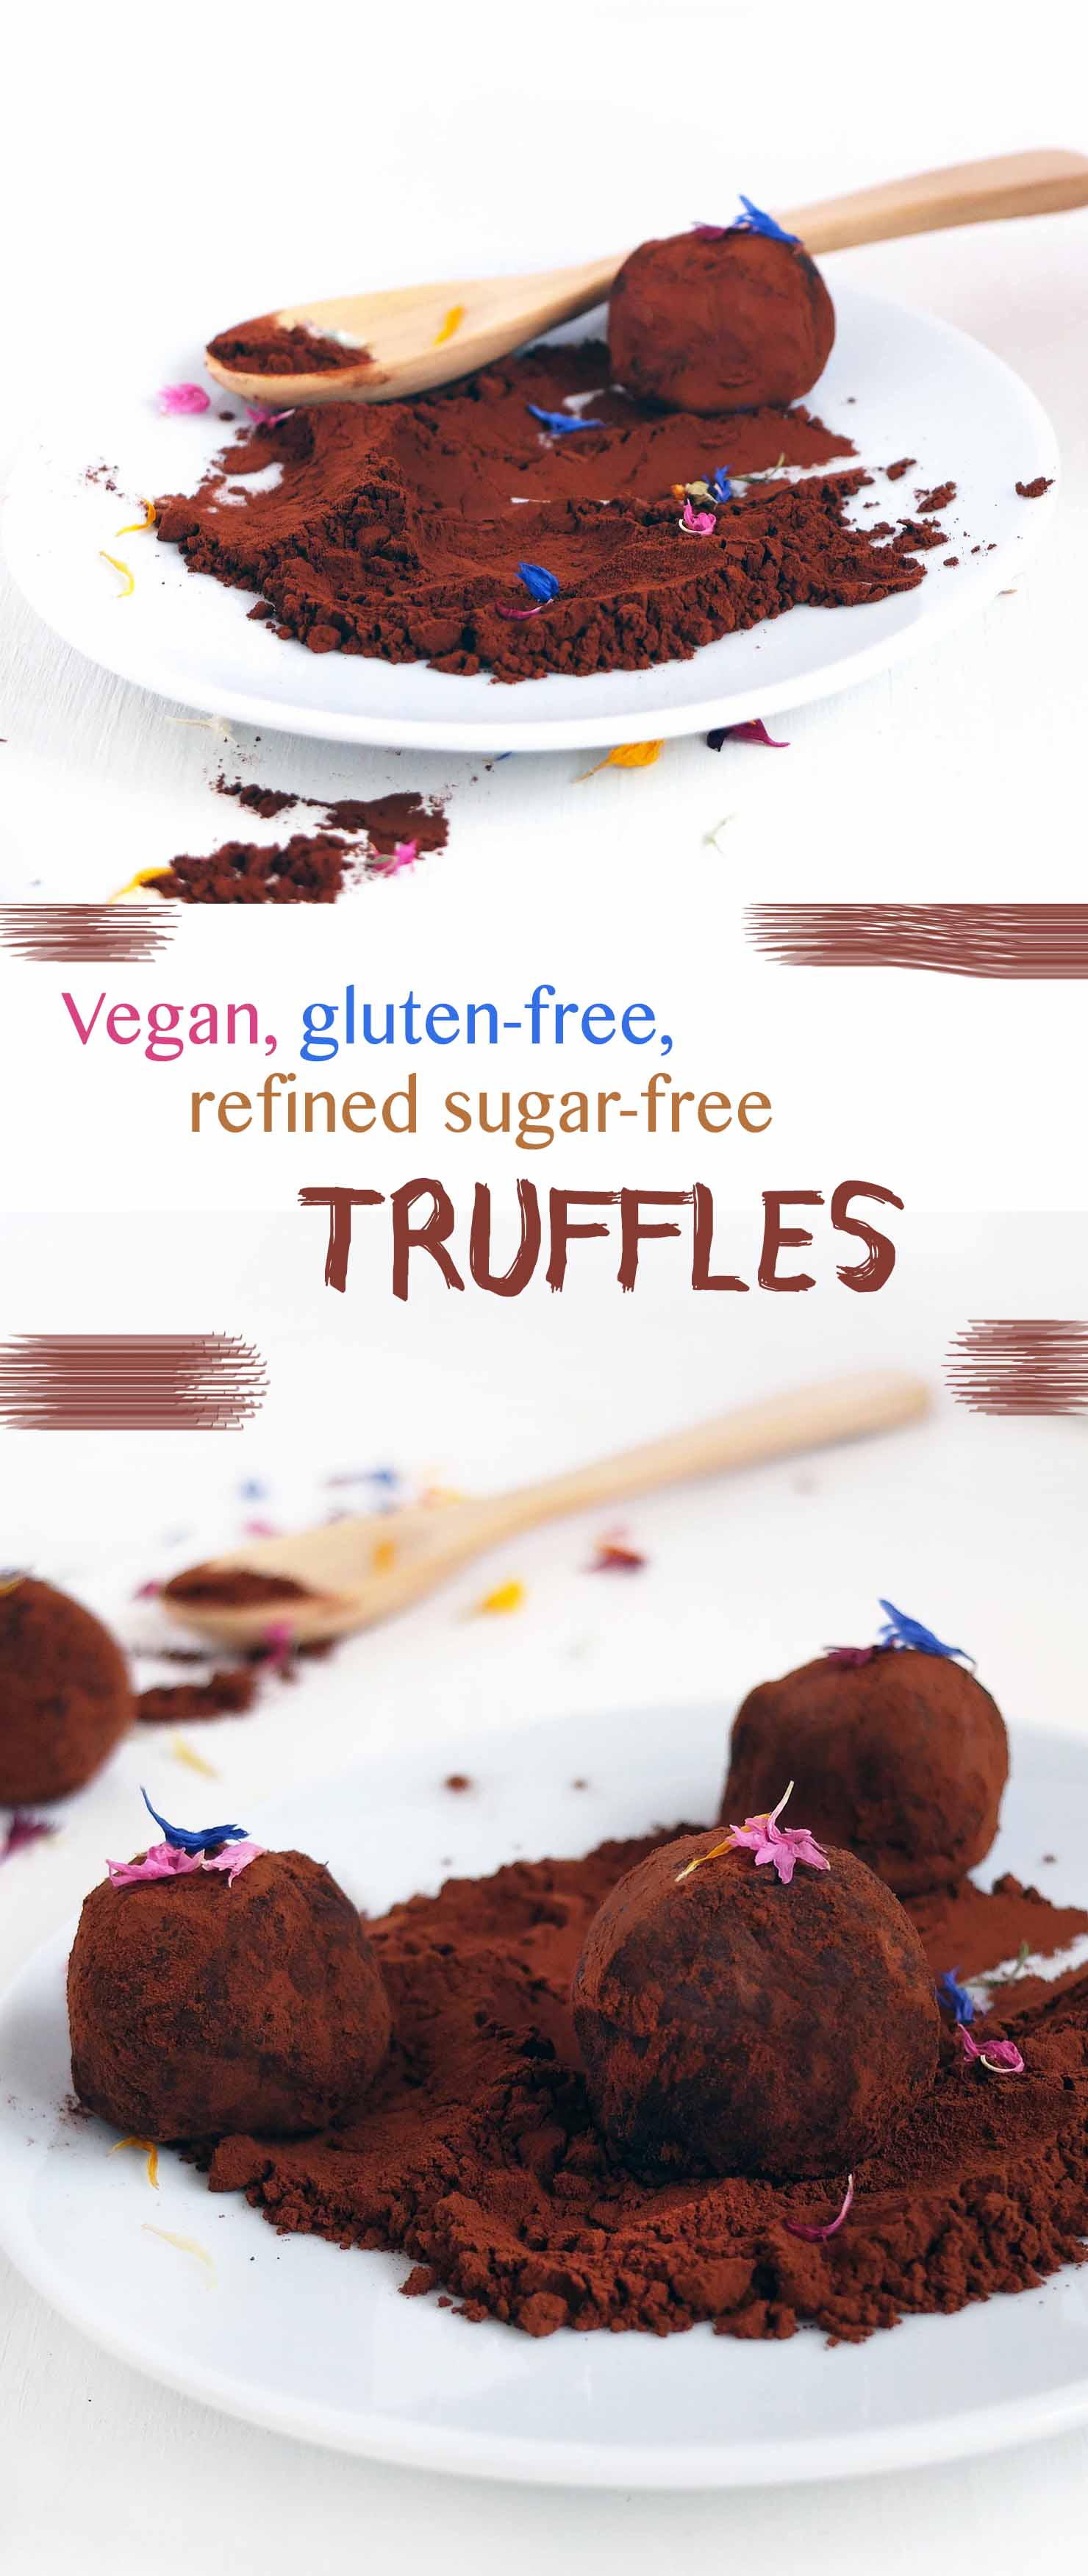 Healthy Chocolate truffles made in just 10 minutes